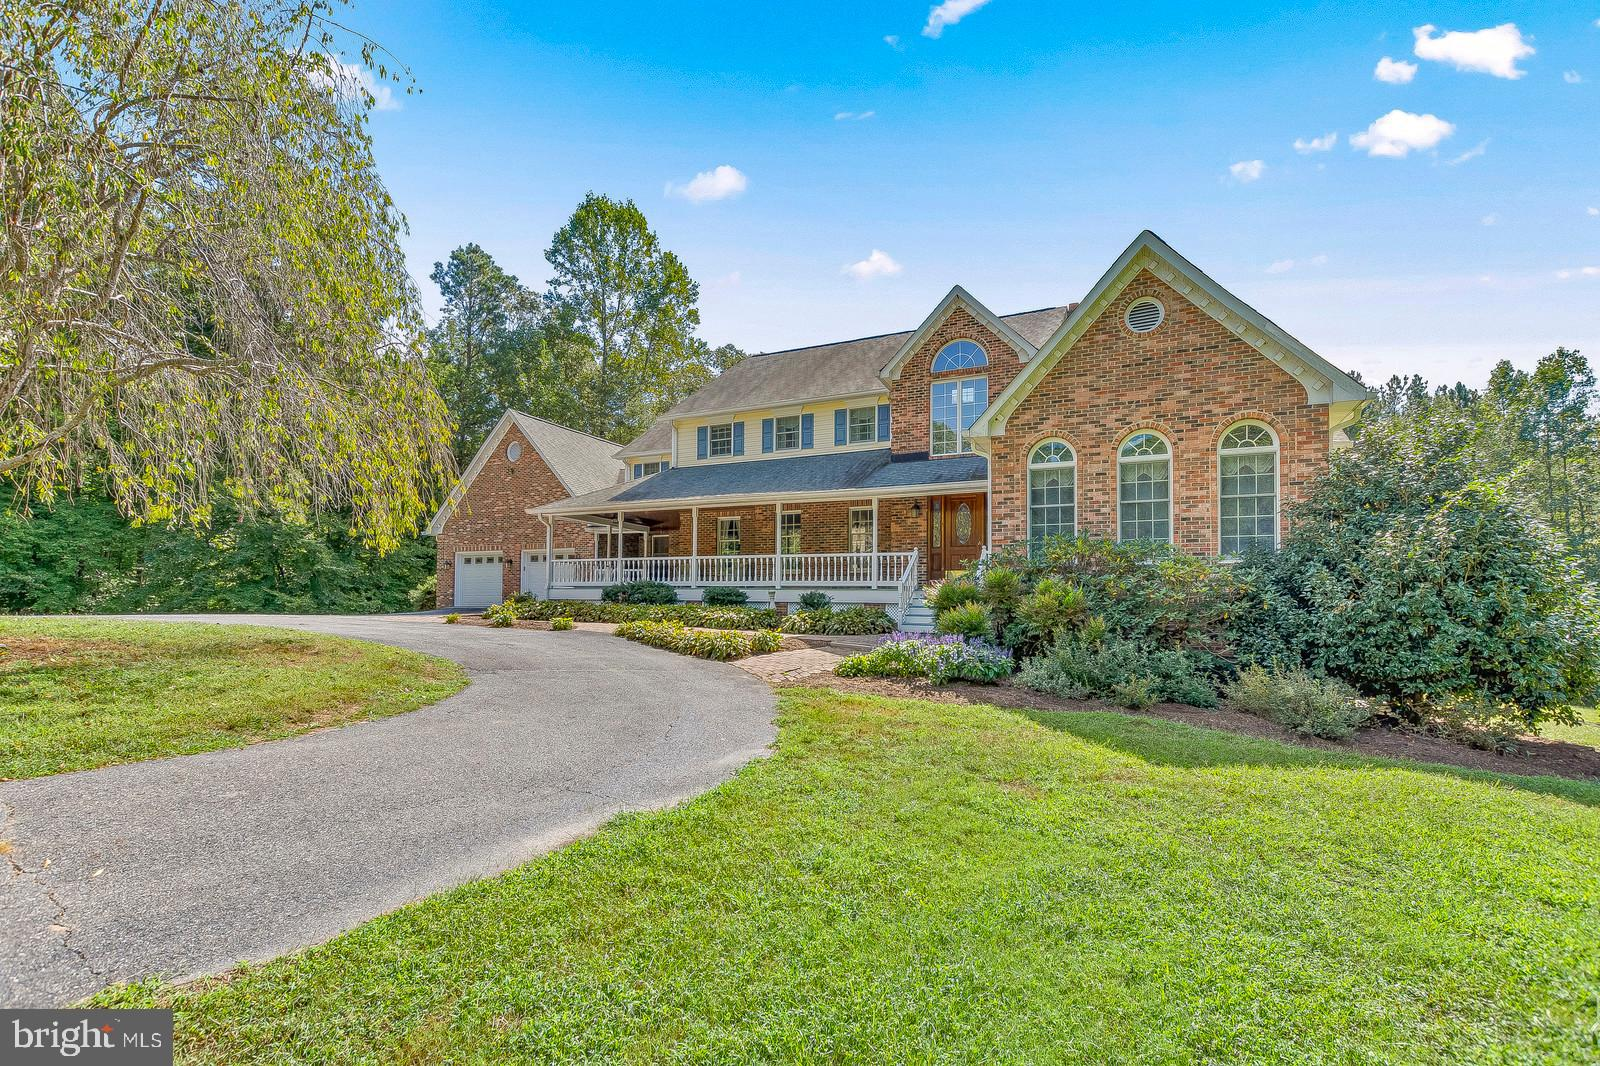 2115 PONDS WOOD ROAD, HUNTINGTOWN, MD 20639